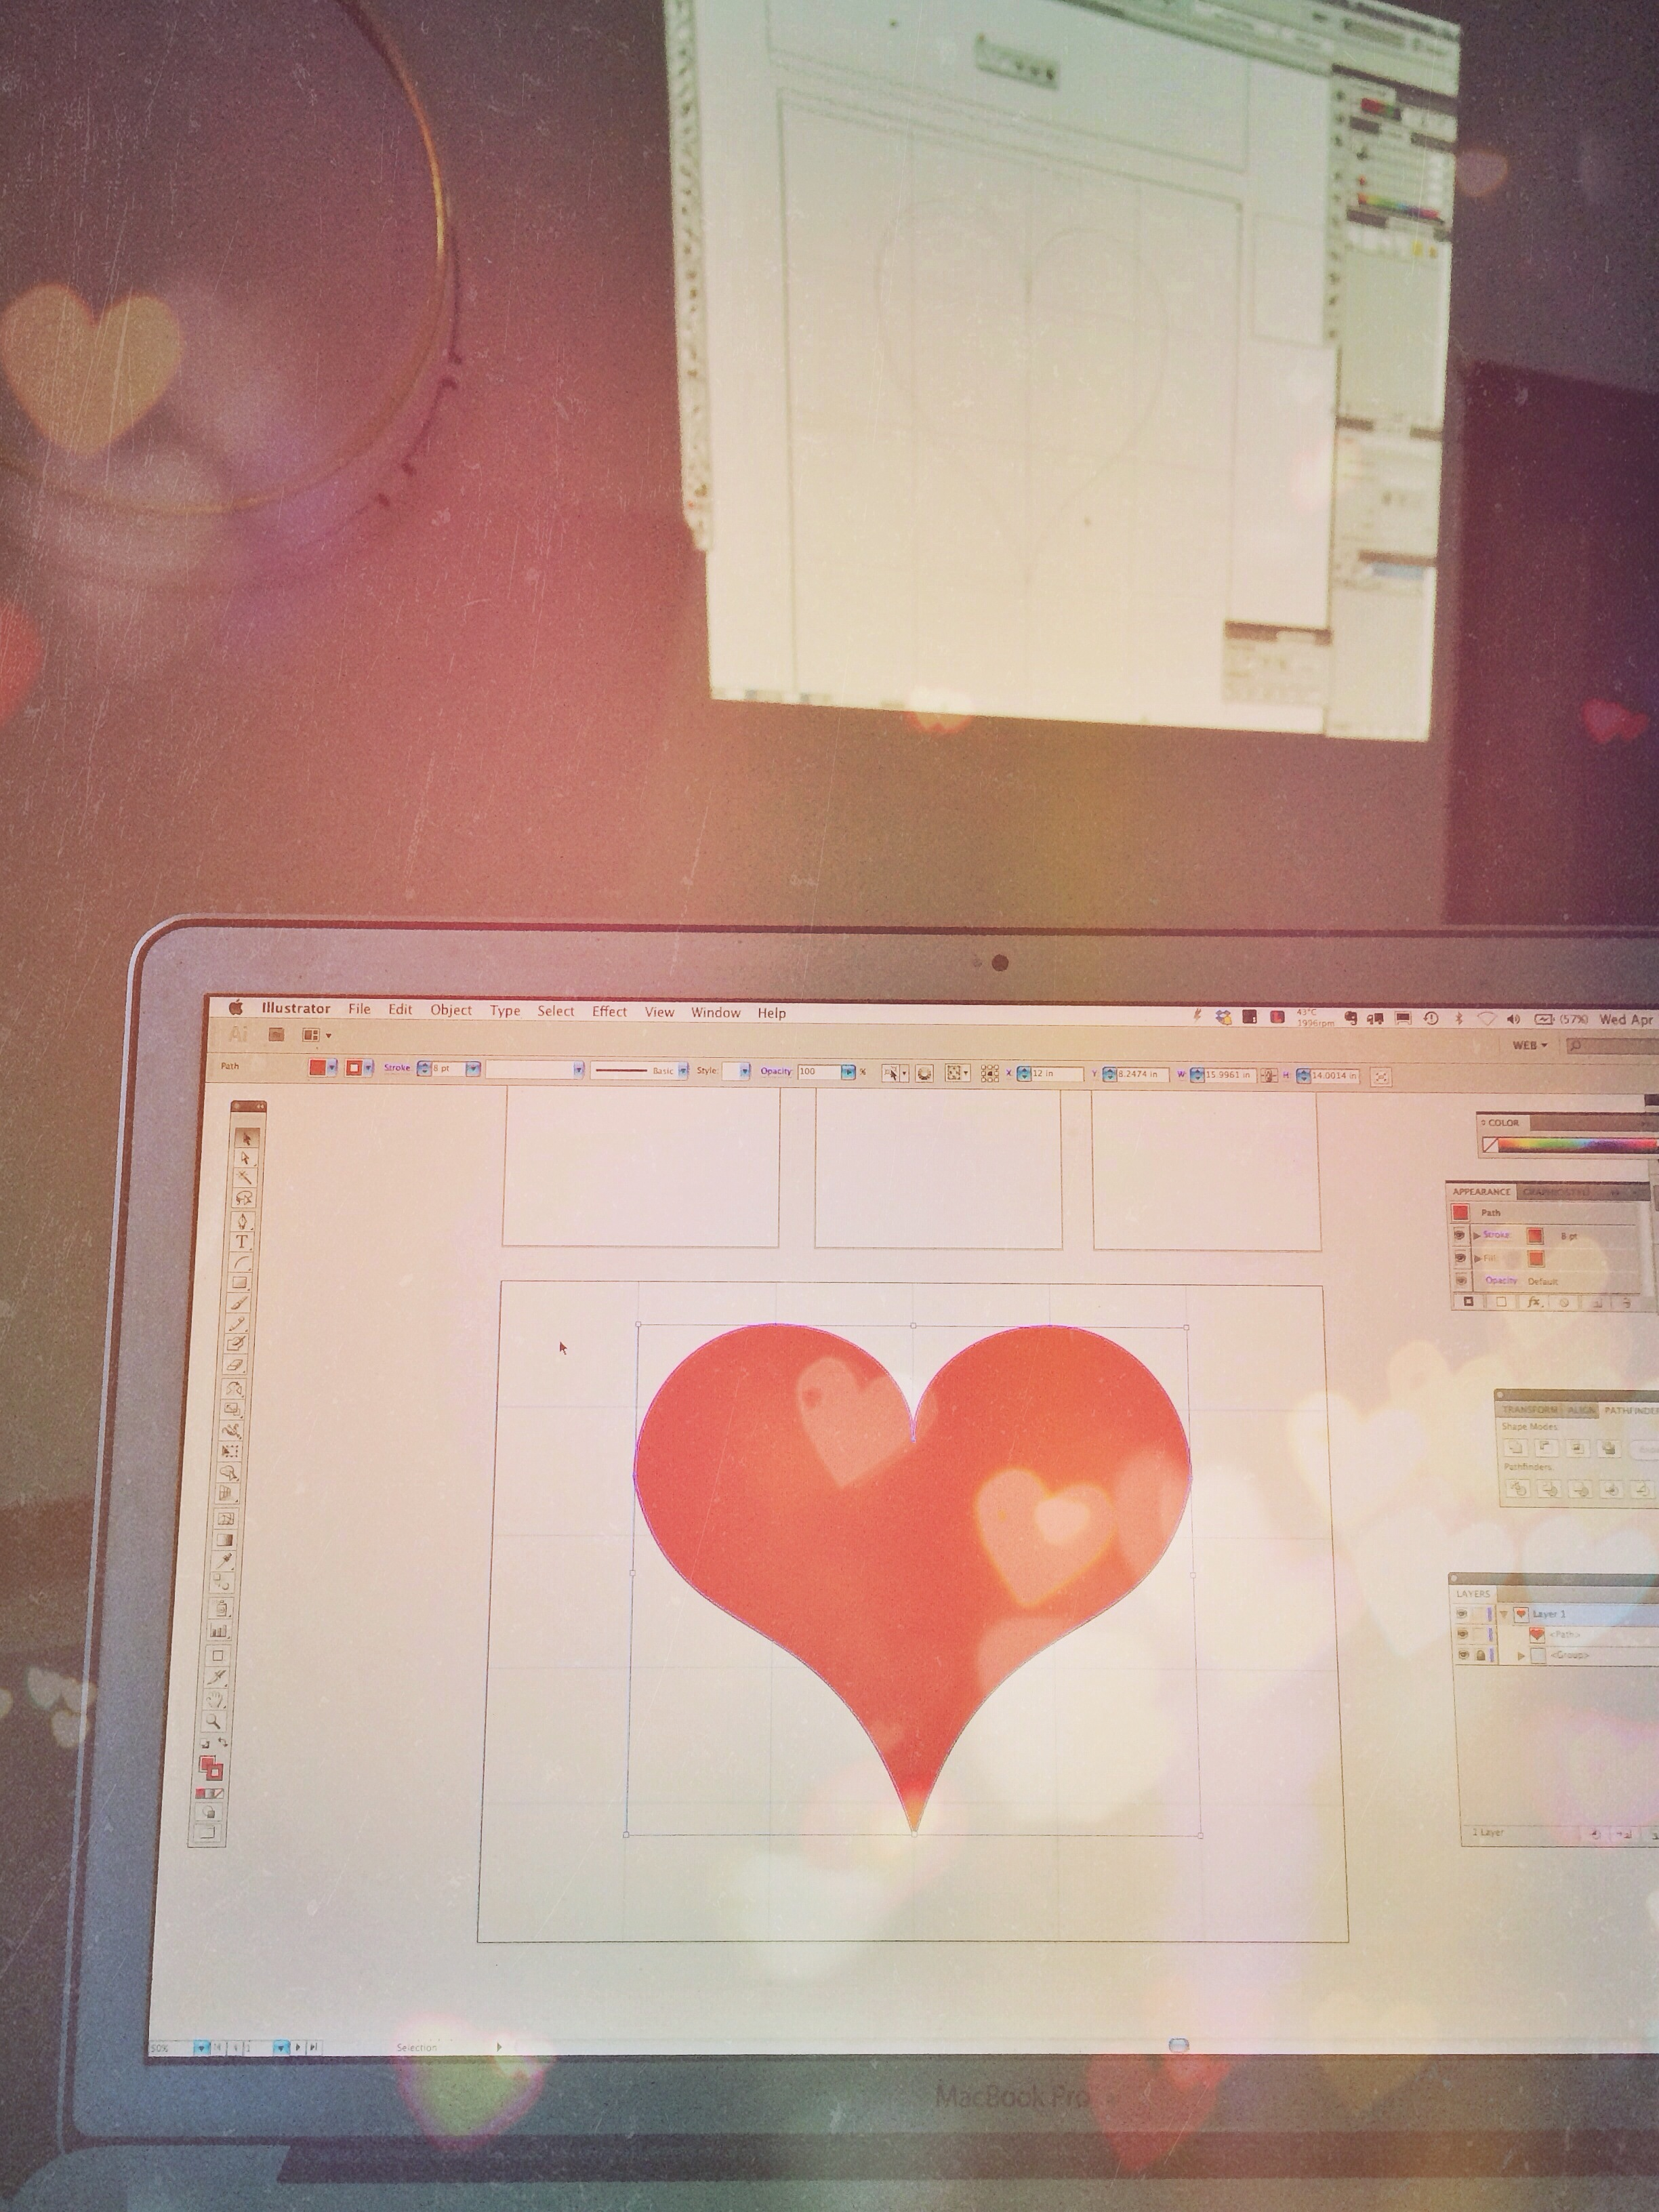 Making hearts in Christopher Breedlove's Adobe Illustrator course hosted through Dabble.